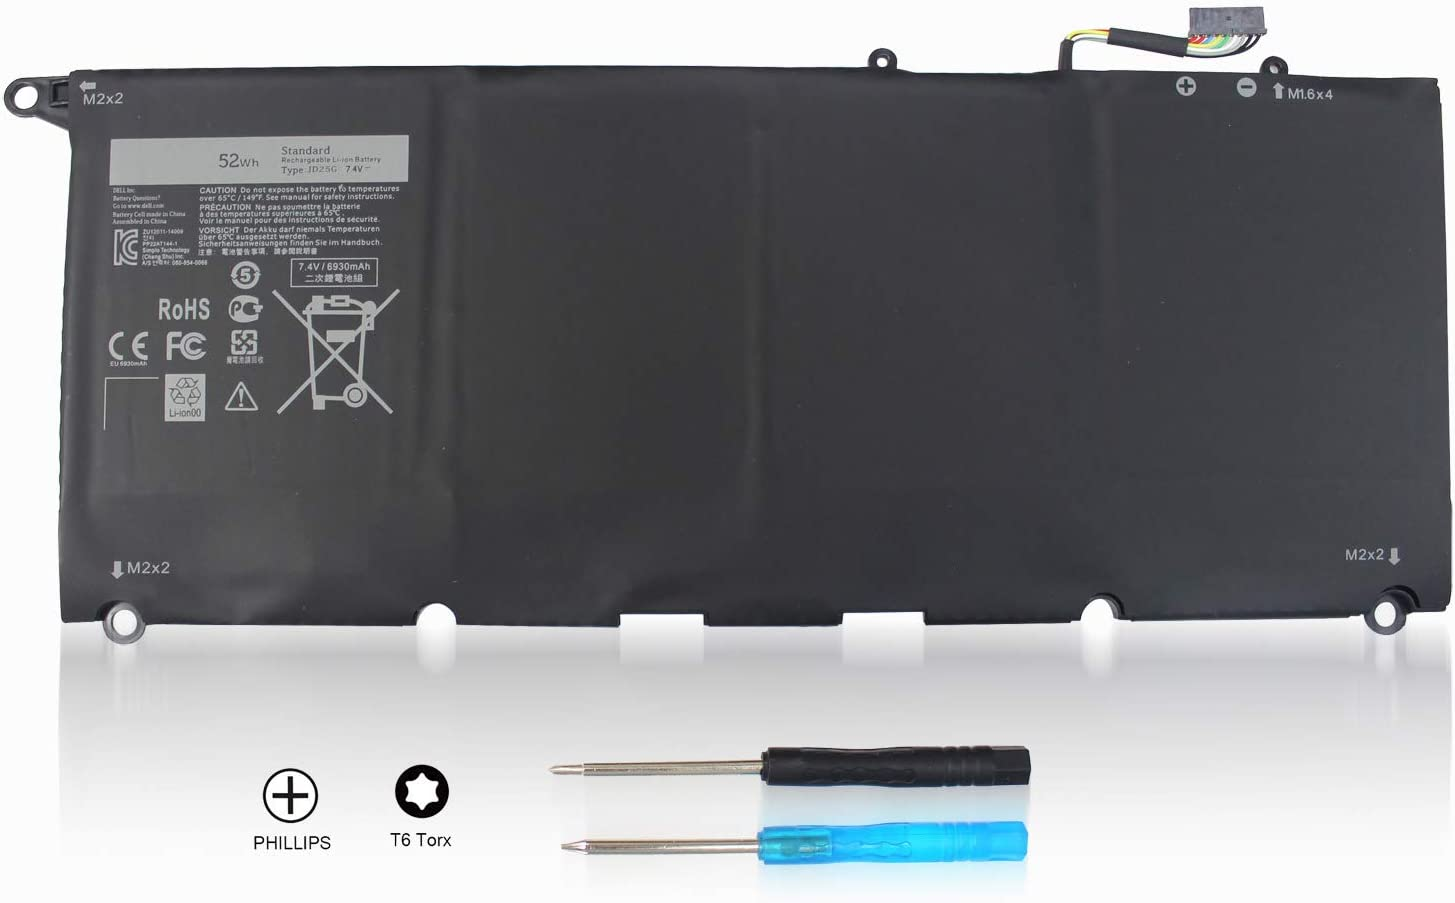 Shareway 7.4V Replacement Laptop Battery for Dell XPS 13-9343 13-9350 JD25G JHXPY RWT1R 5K9CP 0N7T6 90V7W 090V7W 0DRRP 00DRRP